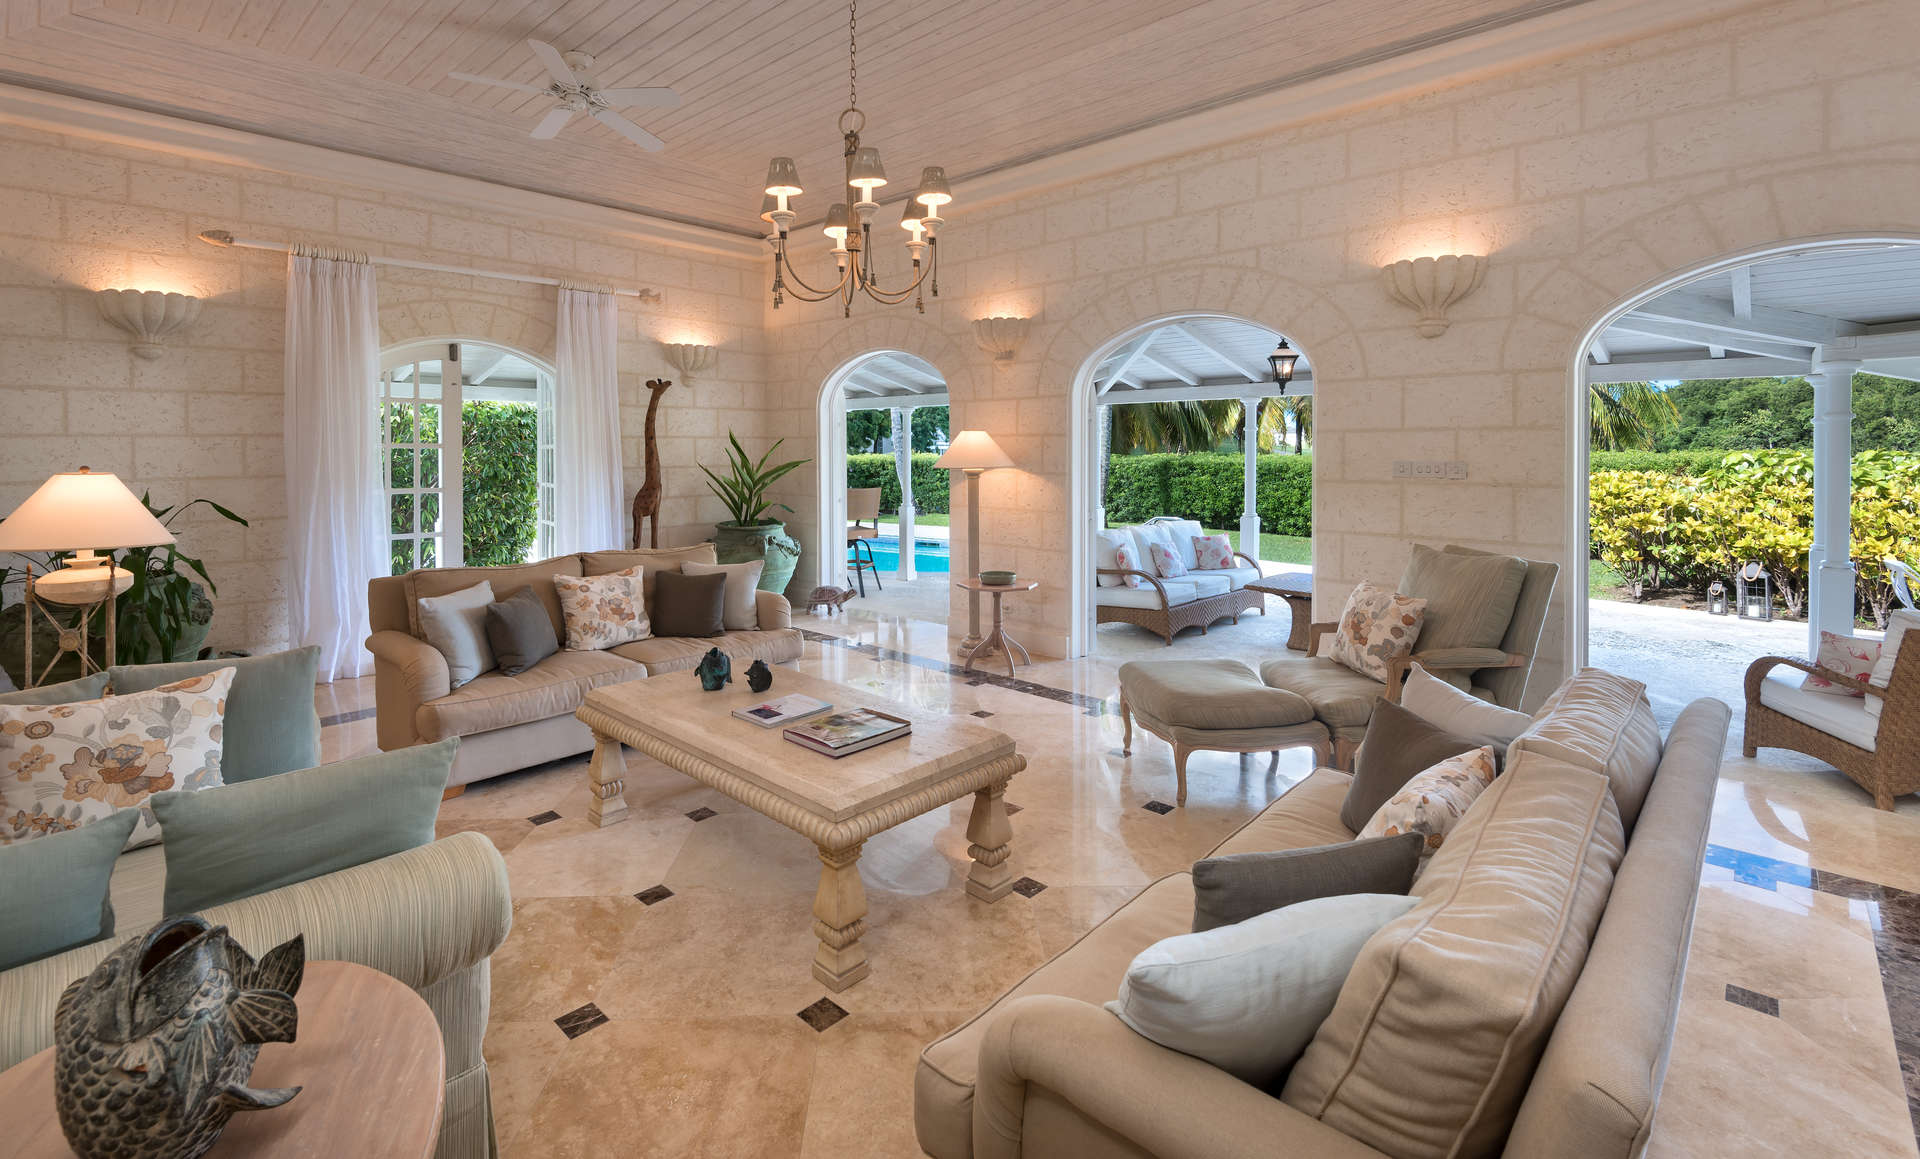 Luxury villa rentals caribbean - Barbados - St james - Royal westmoreland golf resort - Coconut Grove 1 - Image 1/10